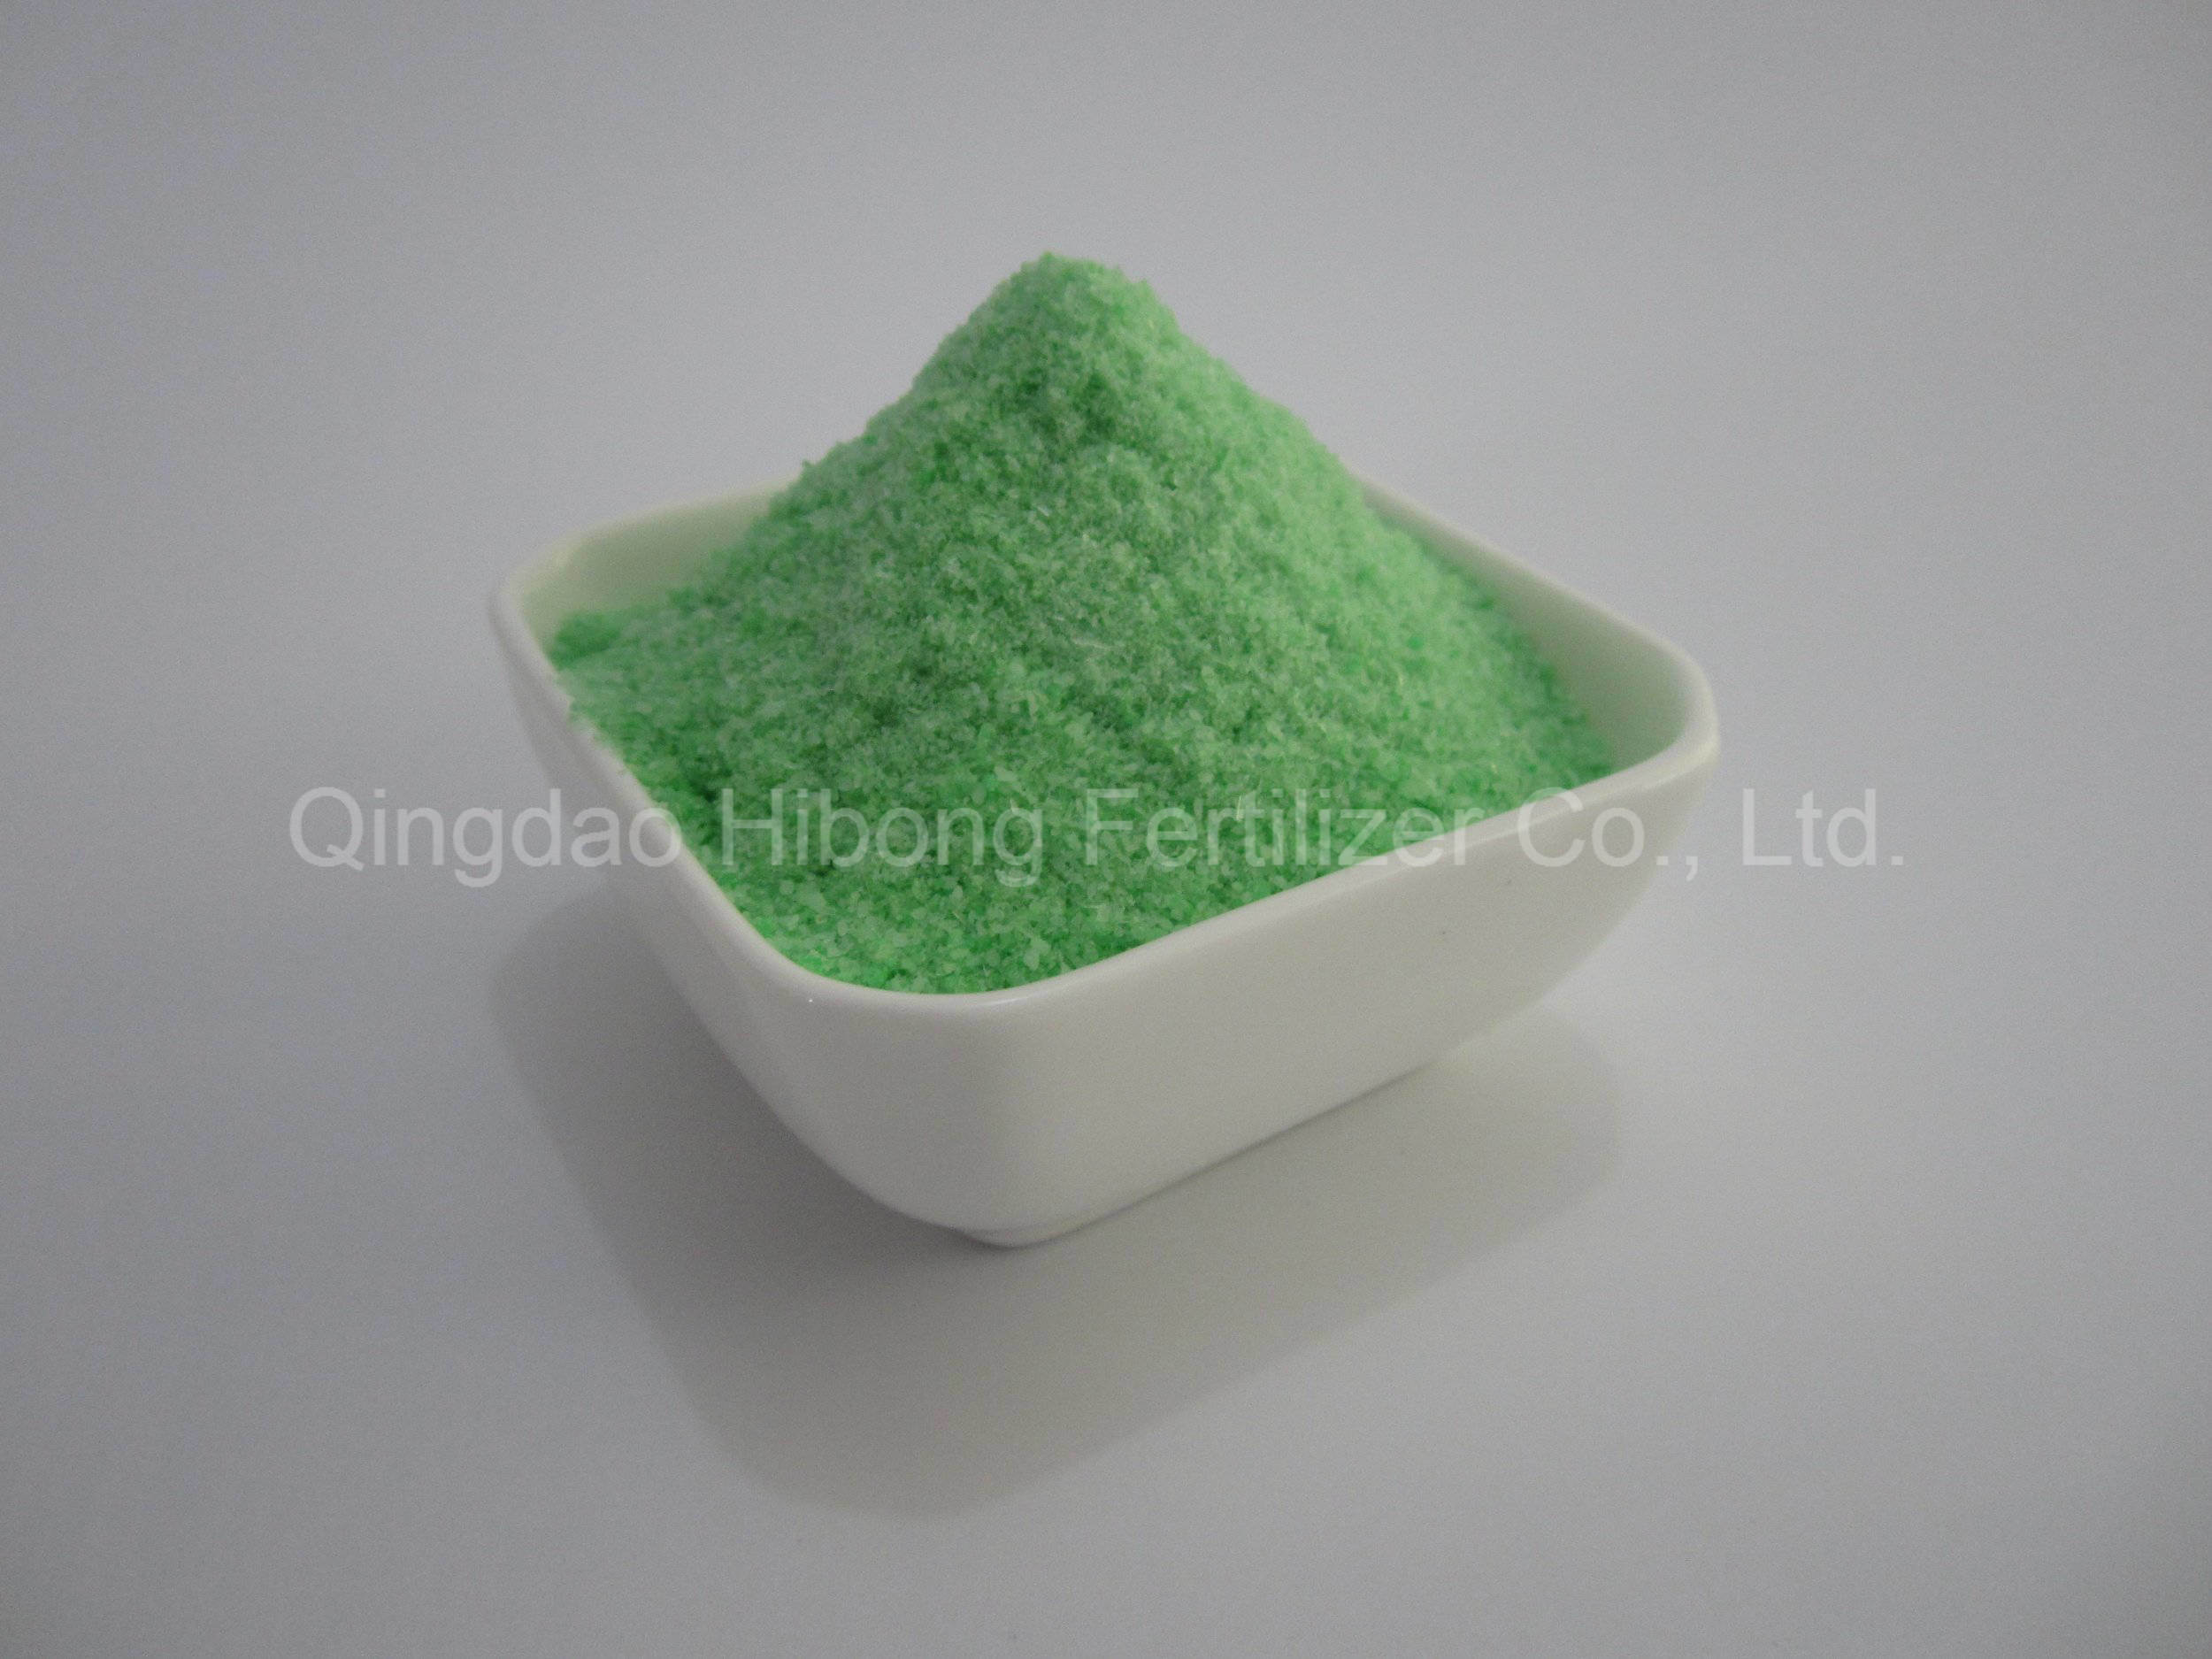 [Hot Item] Names of Chemical Fertilizer NPK 30-10-10 Hydroponic Fertilizer  Nutrients in Agriculture